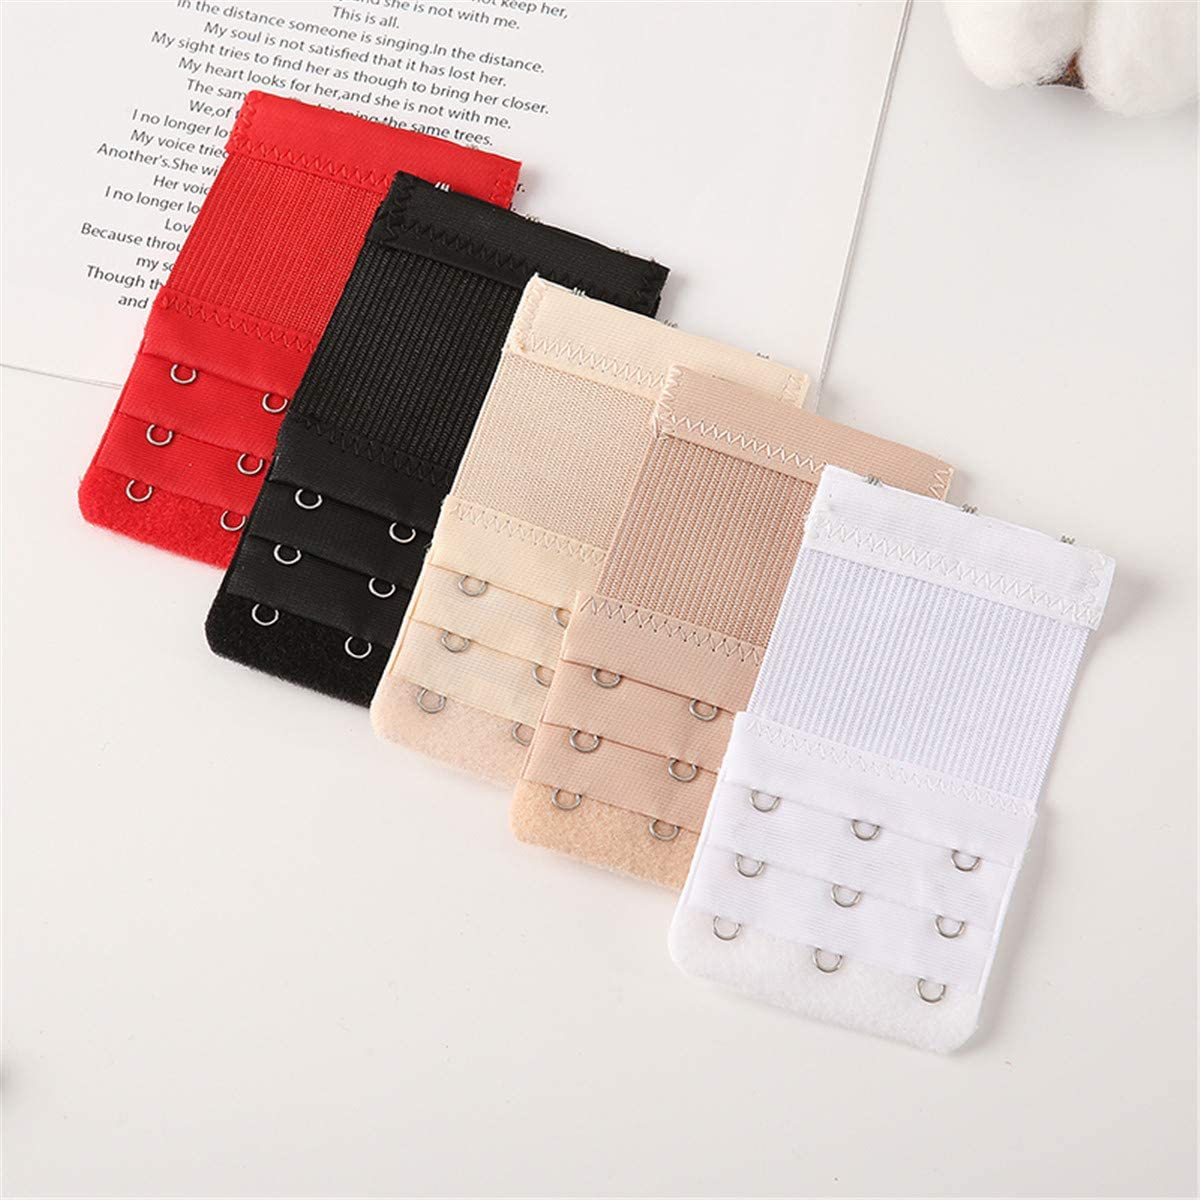 5//6 Pcs Bra Extender Bra Strap Extenders Extensions Comfortable Elastic Extender 3 Rows 2//3//4 Hooks White Black Red Beige Apricot Set for Most Sizes and Colors Bras